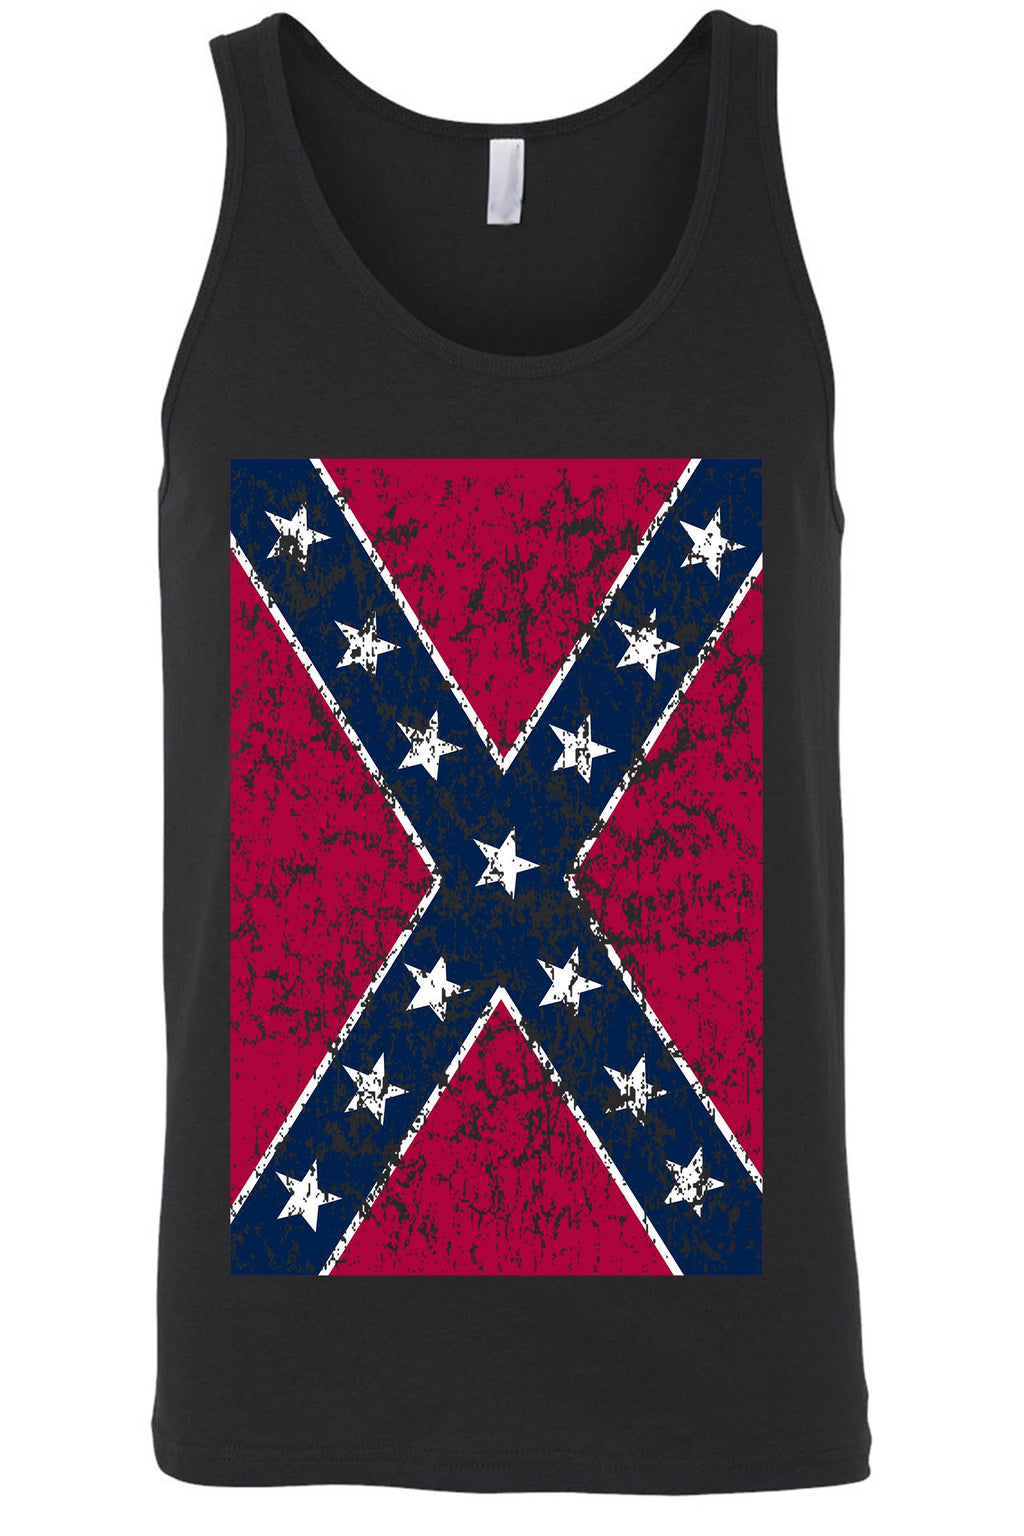 Distressed Confederate Rebel Flag Tank Top